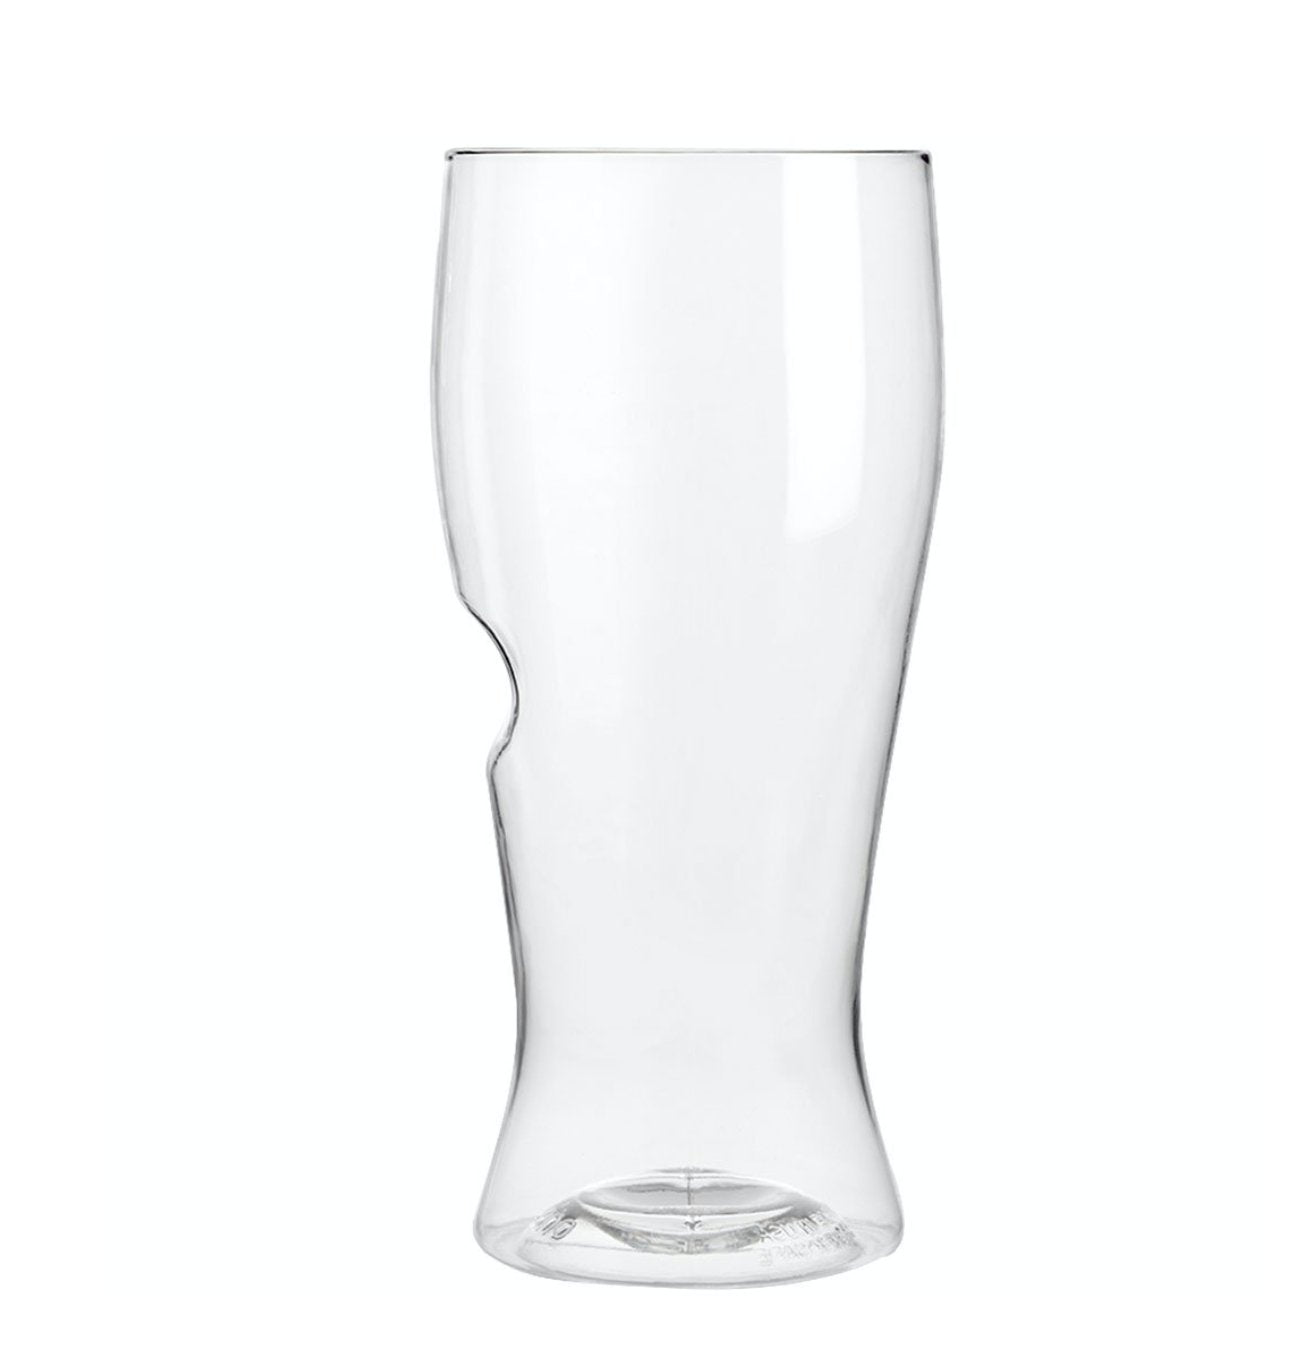 DWS 16OZ BEER GLASS 4-Pack - Molly's! A Chic and Unique Boutique